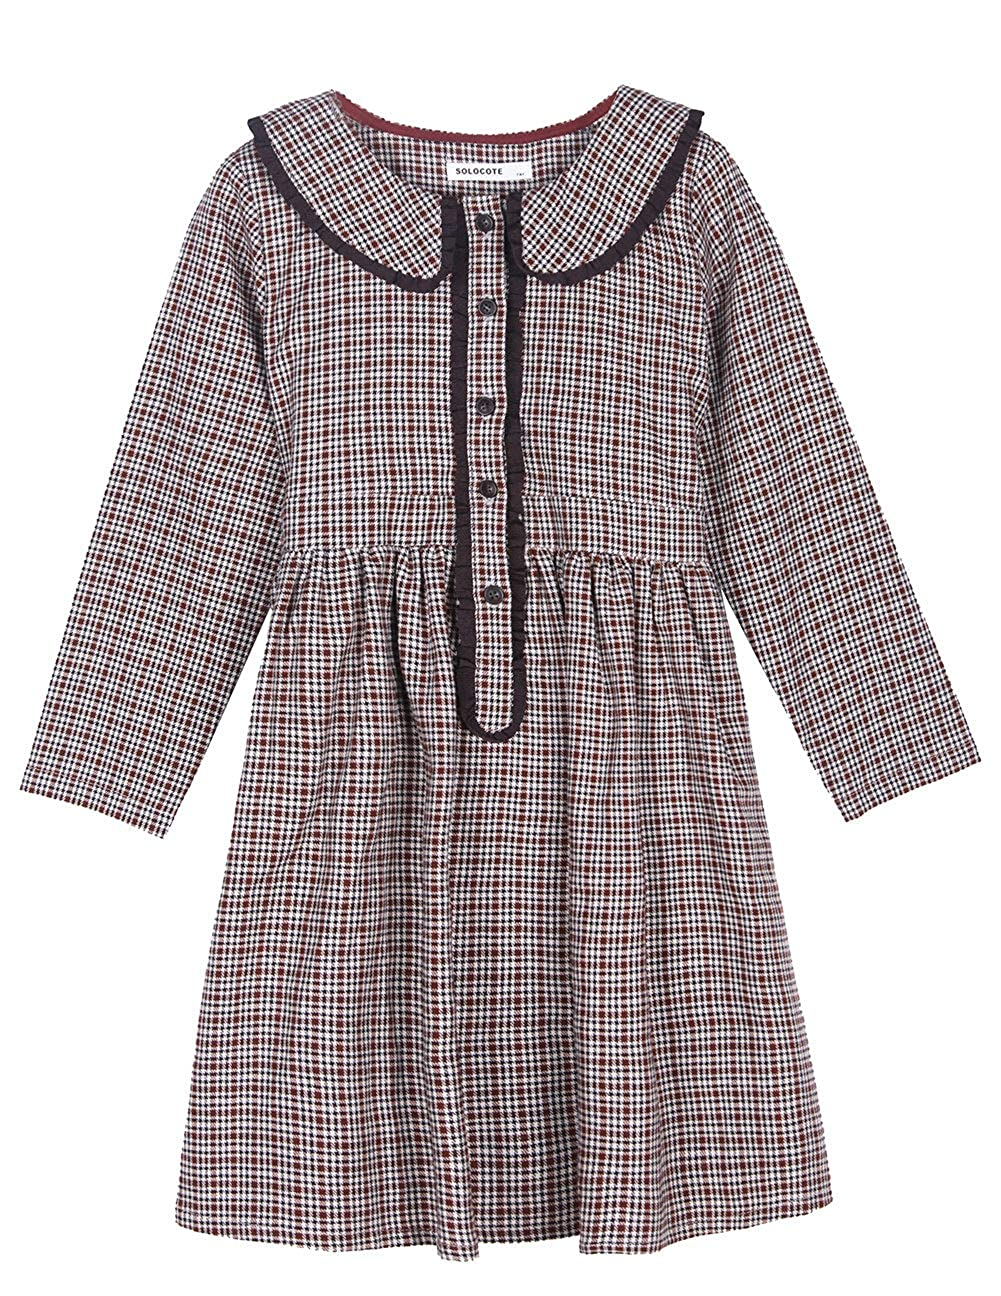 1940s Children's Clothing: Girls, Boys, Baby, Toddler SOLOCOTE Girls Plaid Dress Grey Spring Long Sleeve Dresses Peter Pan Collar 3-14Y $25.99 AT vintagedancer.com